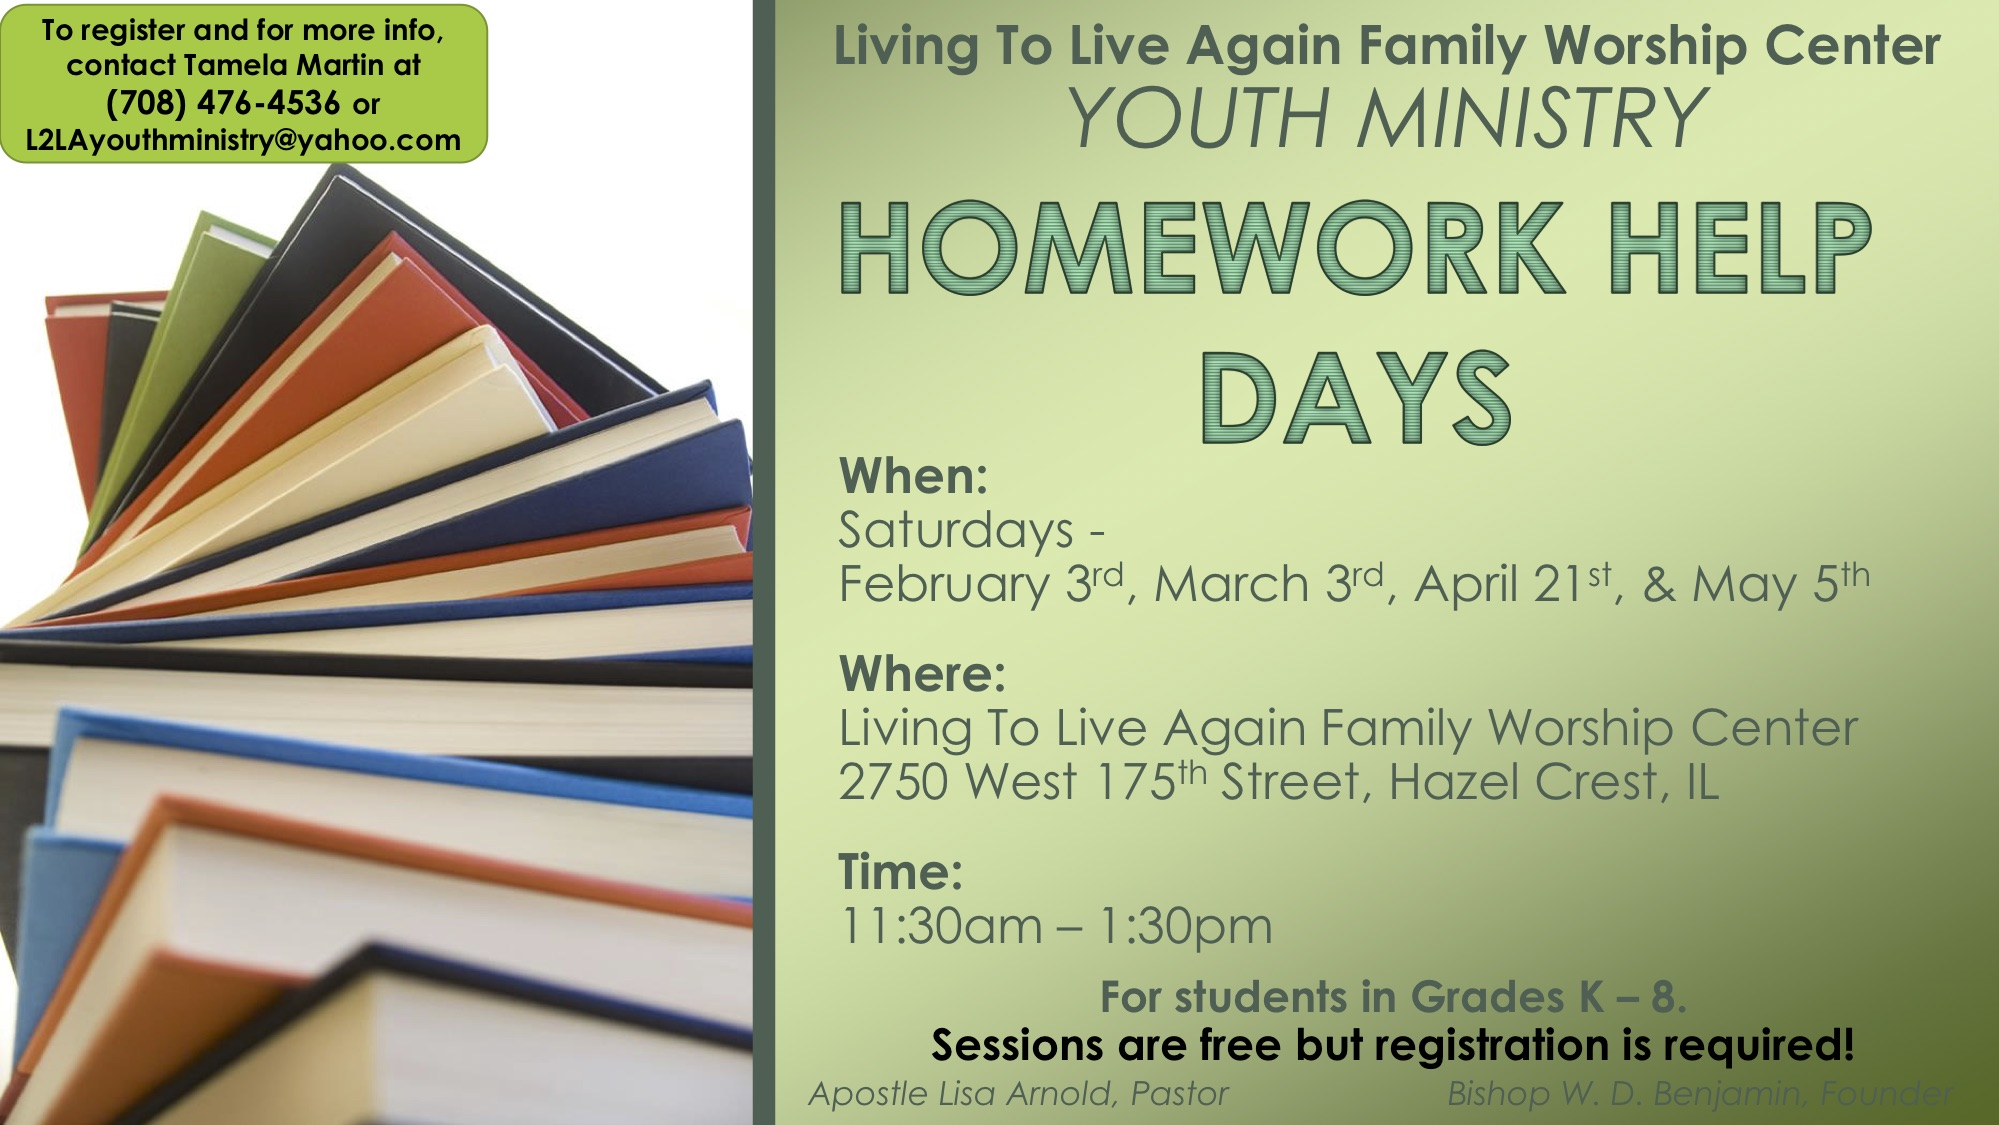 4.21.18 - Homework Help Flyer (from Living to Live Again Family Worship Cntr)